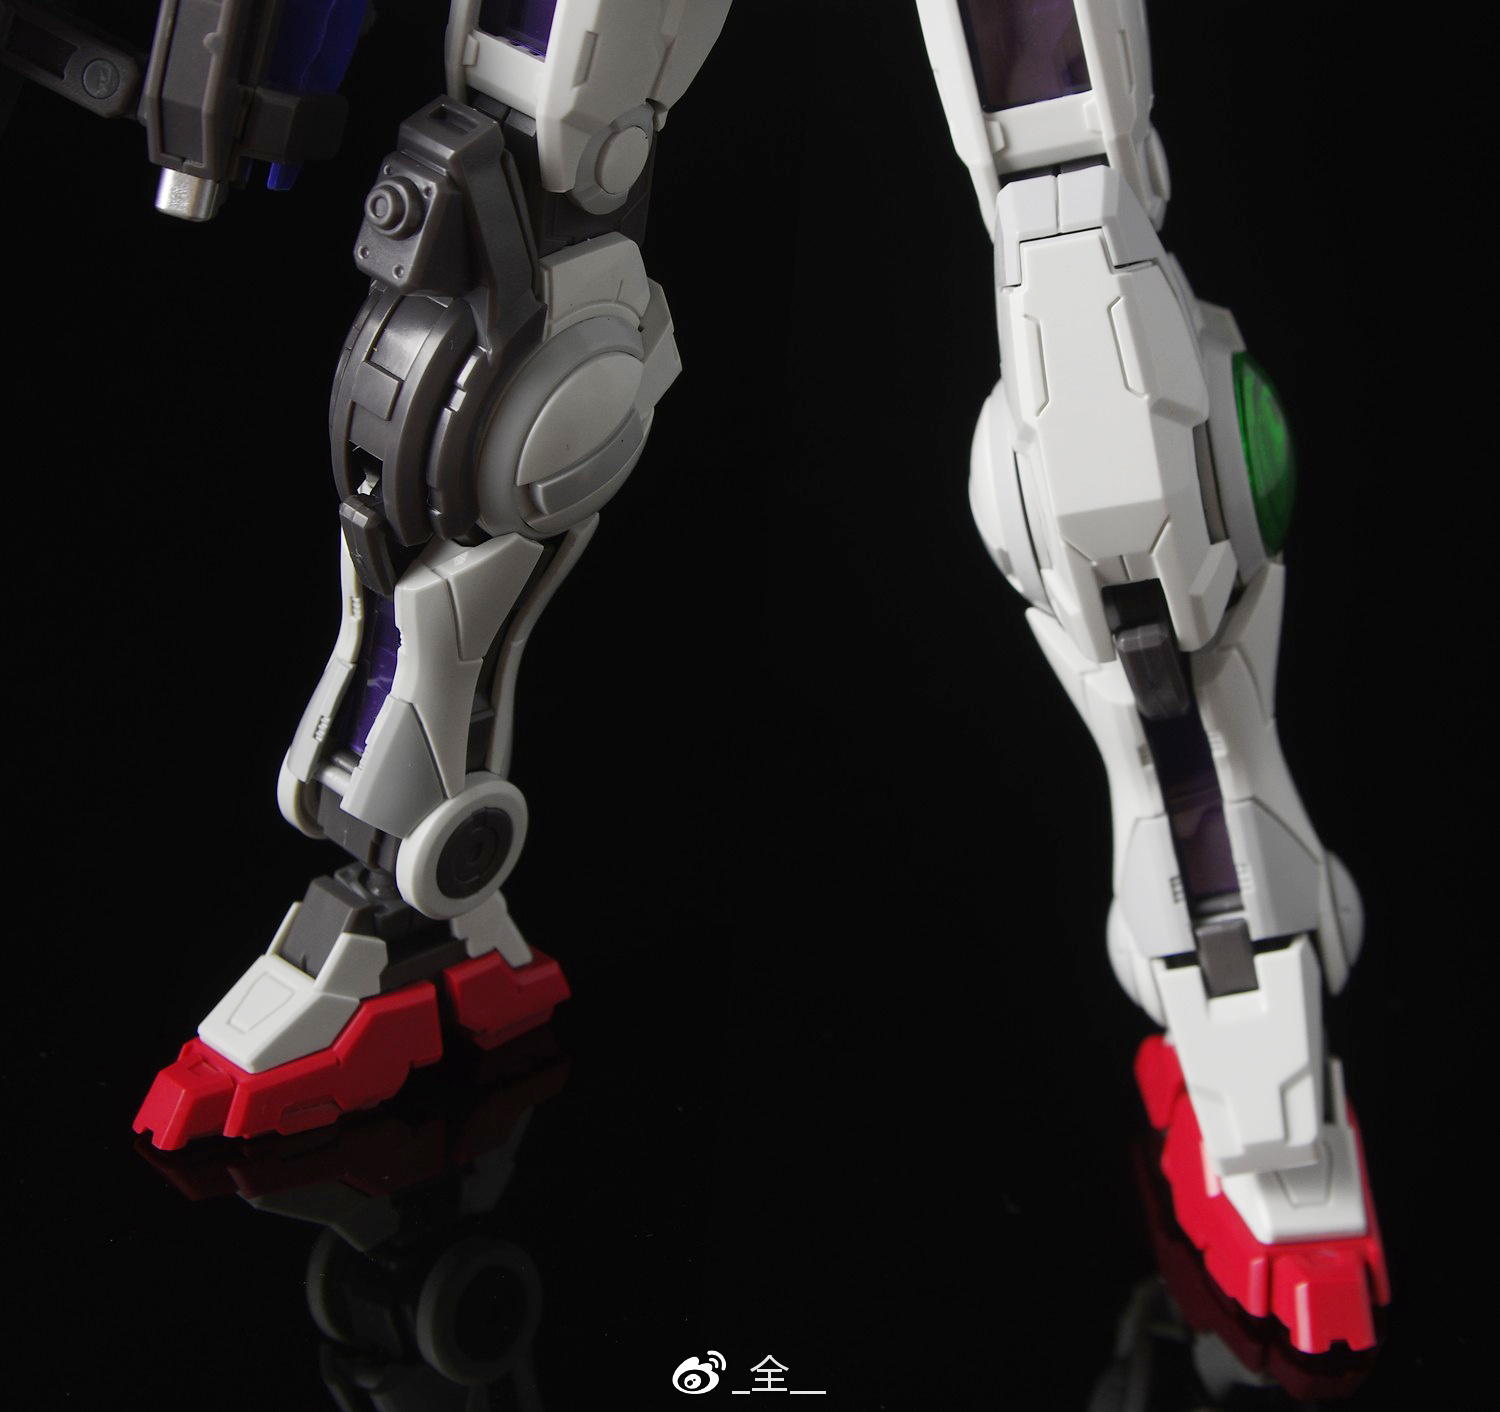 S269_mg_exia_led_hobby_star_inask_079.jpg